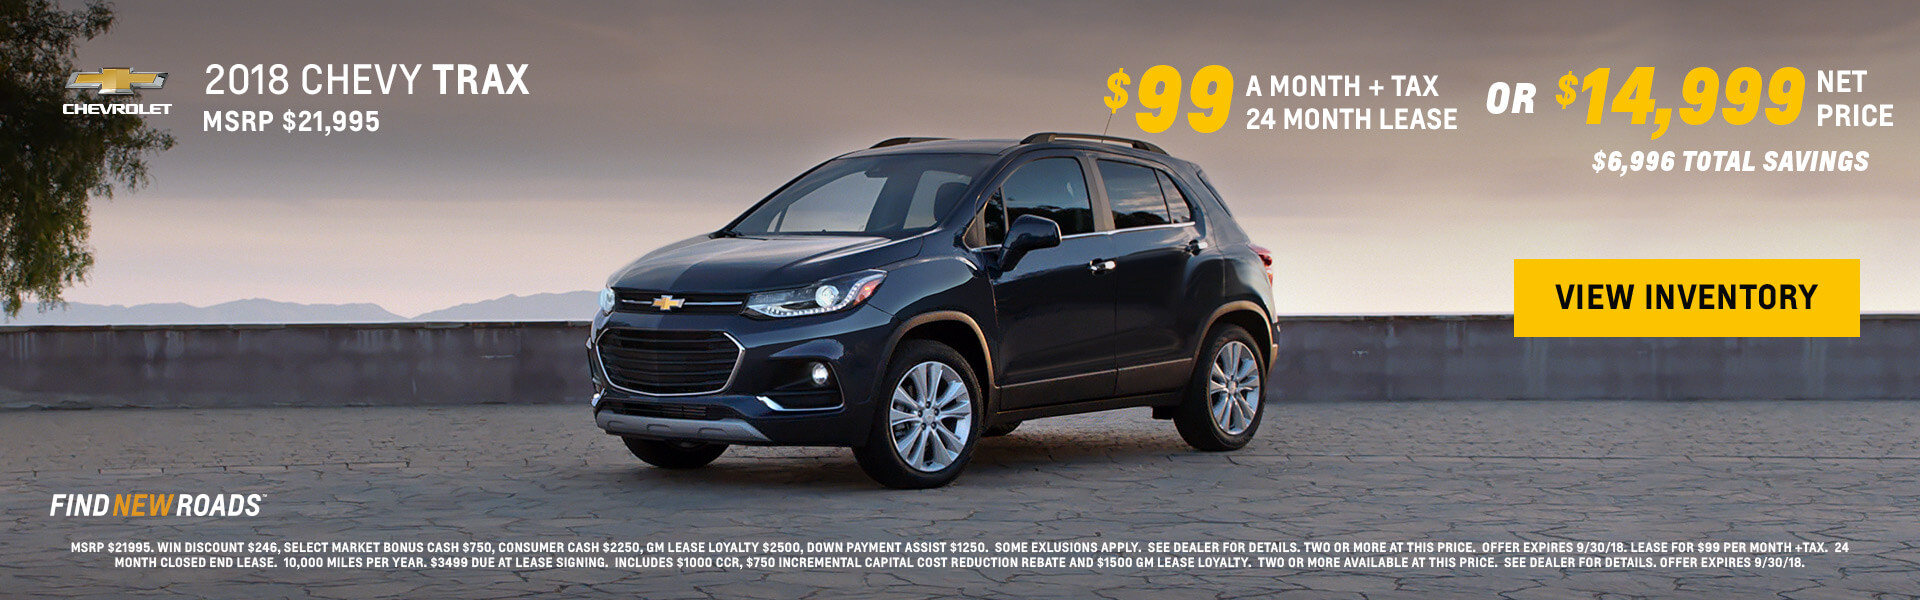 2018 Chevy Trax $15999